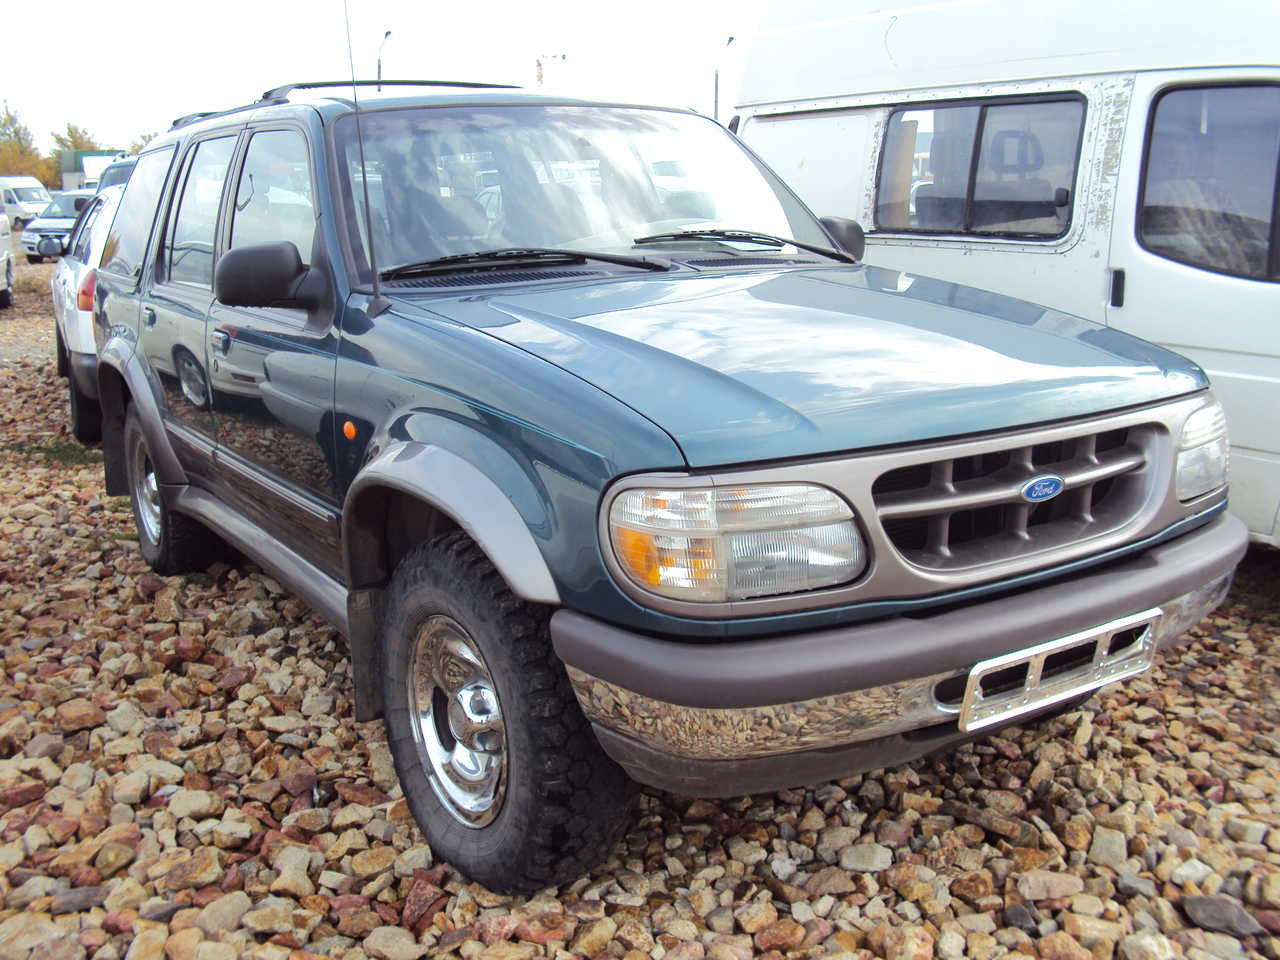 used 1996 ford explorer photos 4000cc gasoline manual for sale. Black Bedroom Furniture Sets. Home Design Ideas